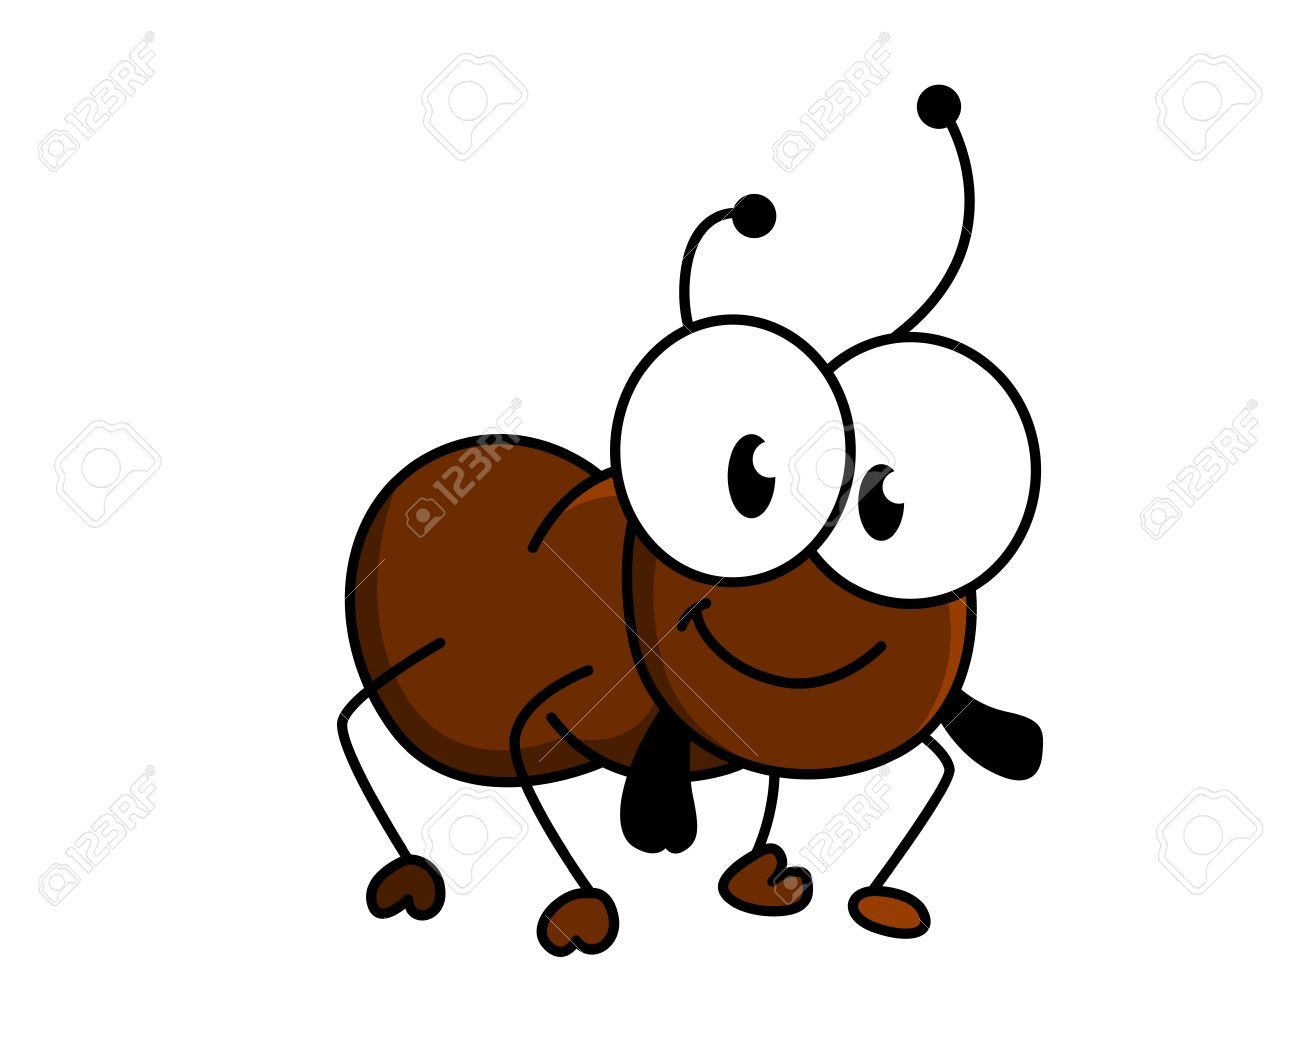 Adorable Little Brown Cartoon Ant With A Happy Smile And Googly